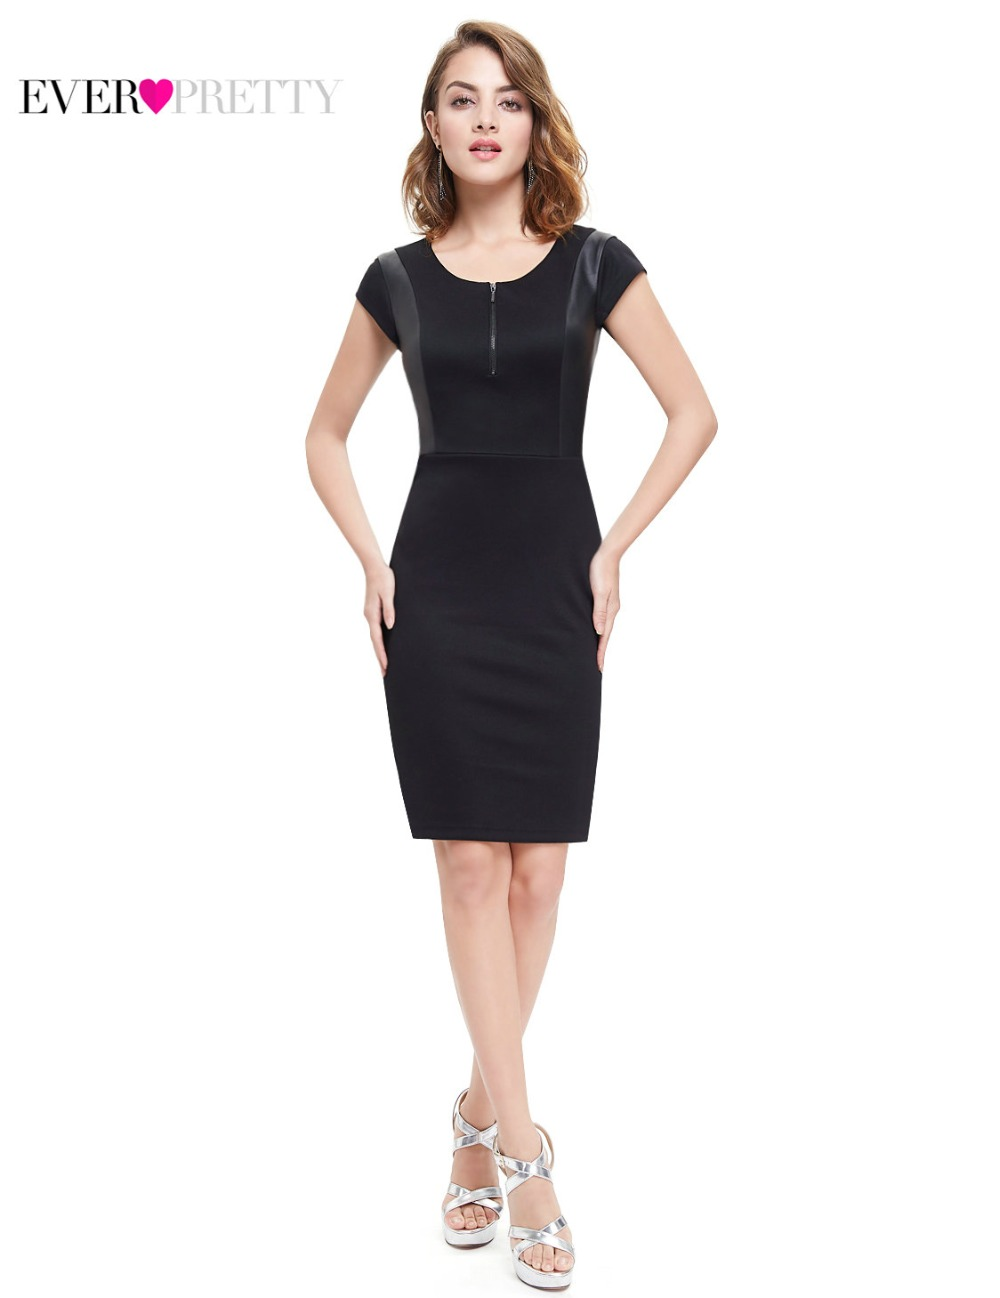 Ever Pretty 2018 Clearance Style Cocktail Dress Black Sexy Stretchy Women Dresses A-line Cocktail Dresses XXKB60350EHA